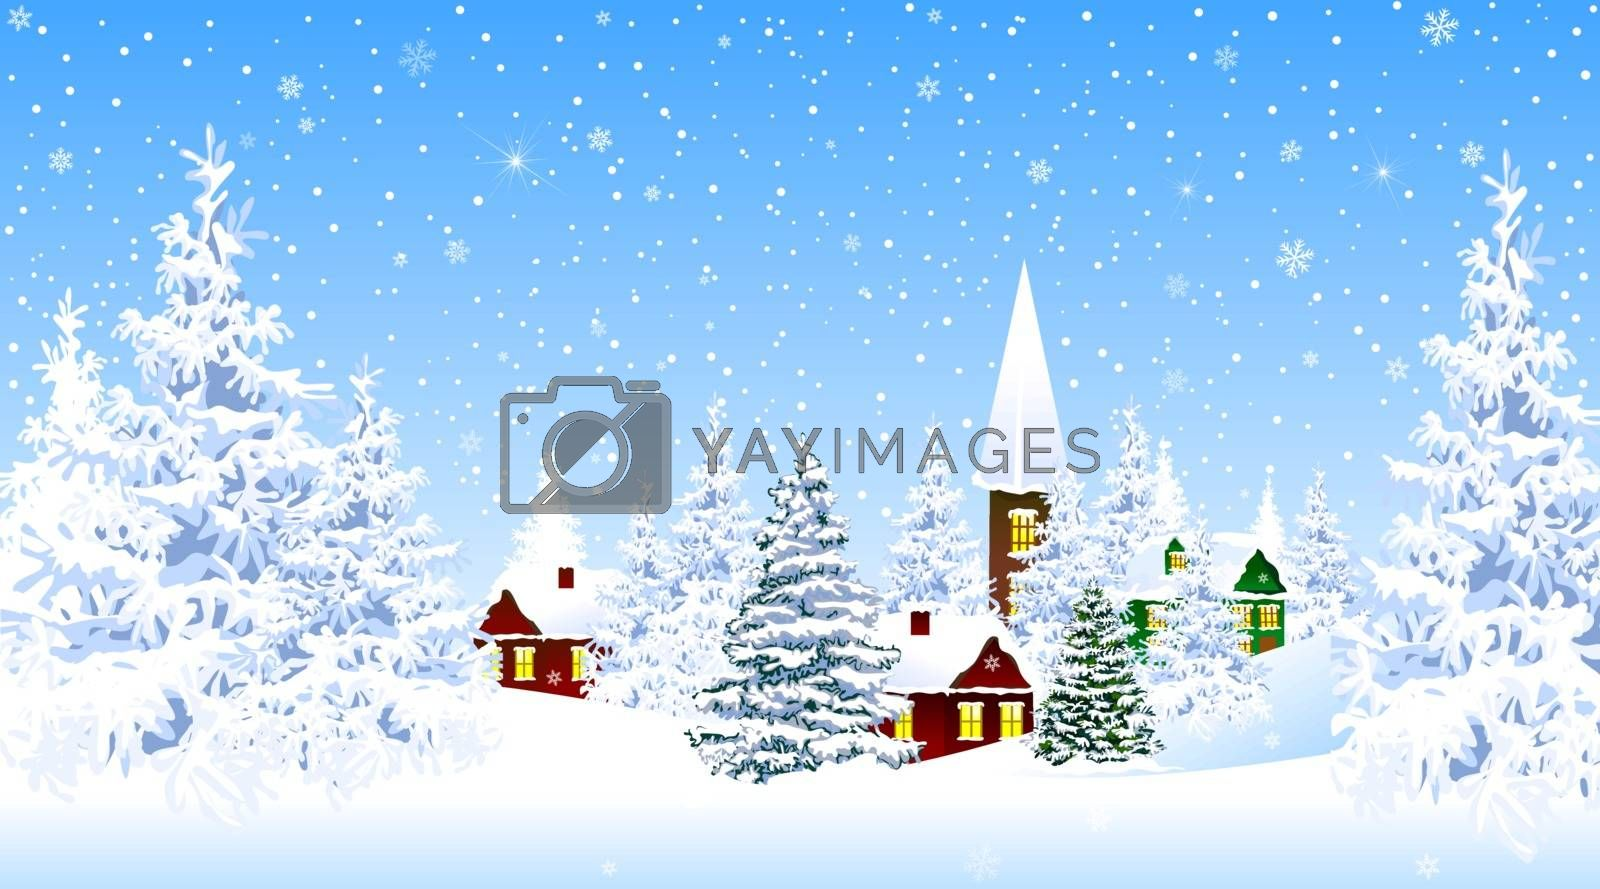 Winter rural landscape. The night eve Christmas. Village, snow, forest. Shining stars and snowflakes in the night sky. Christmas winter night scene. Winter background.